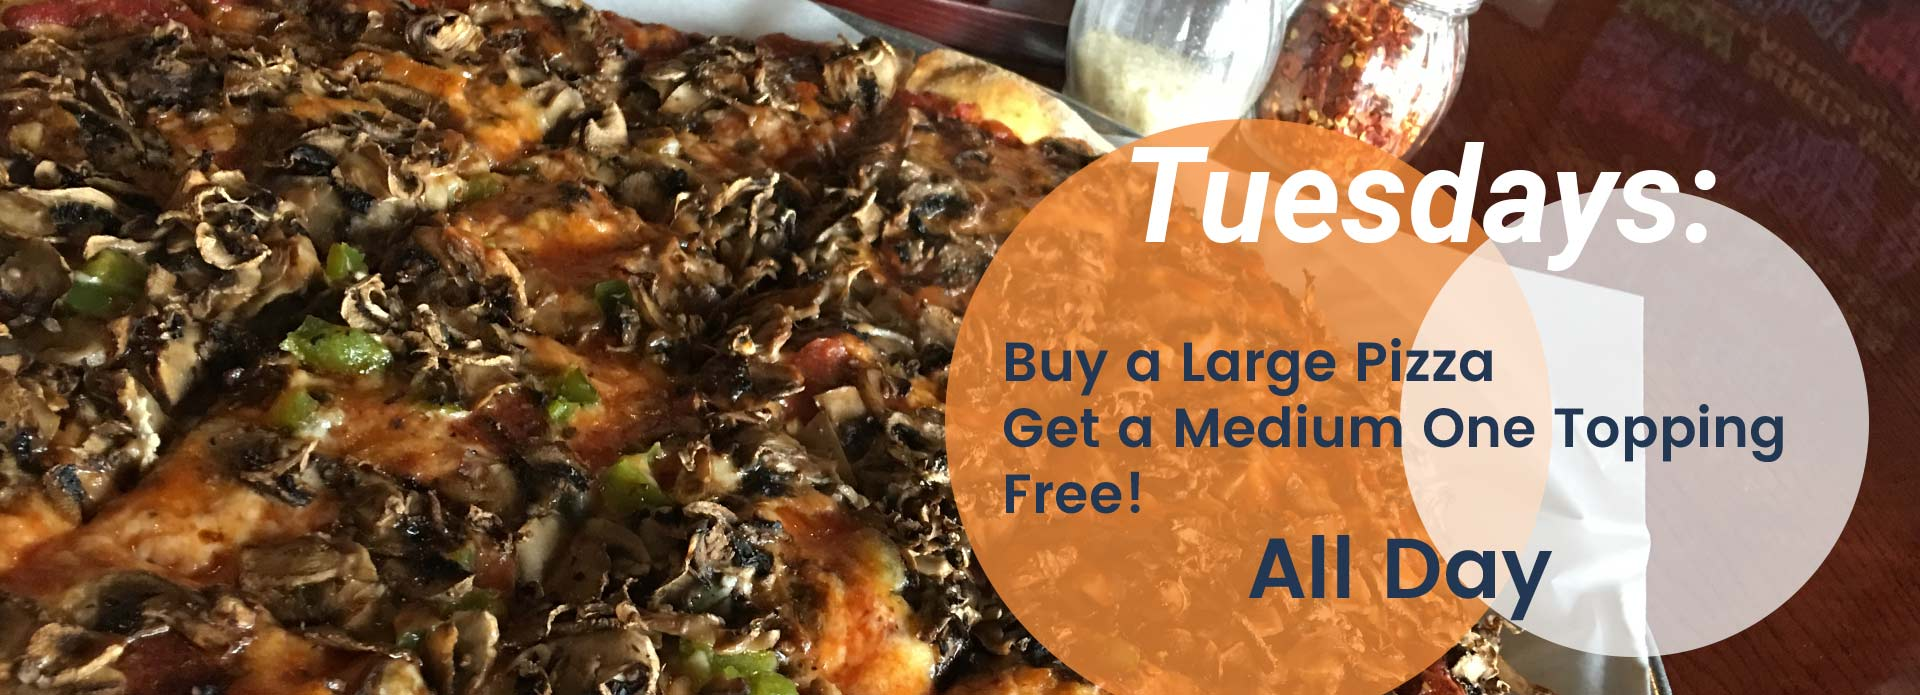 Tuesday Special at Cranky Pats Pizza